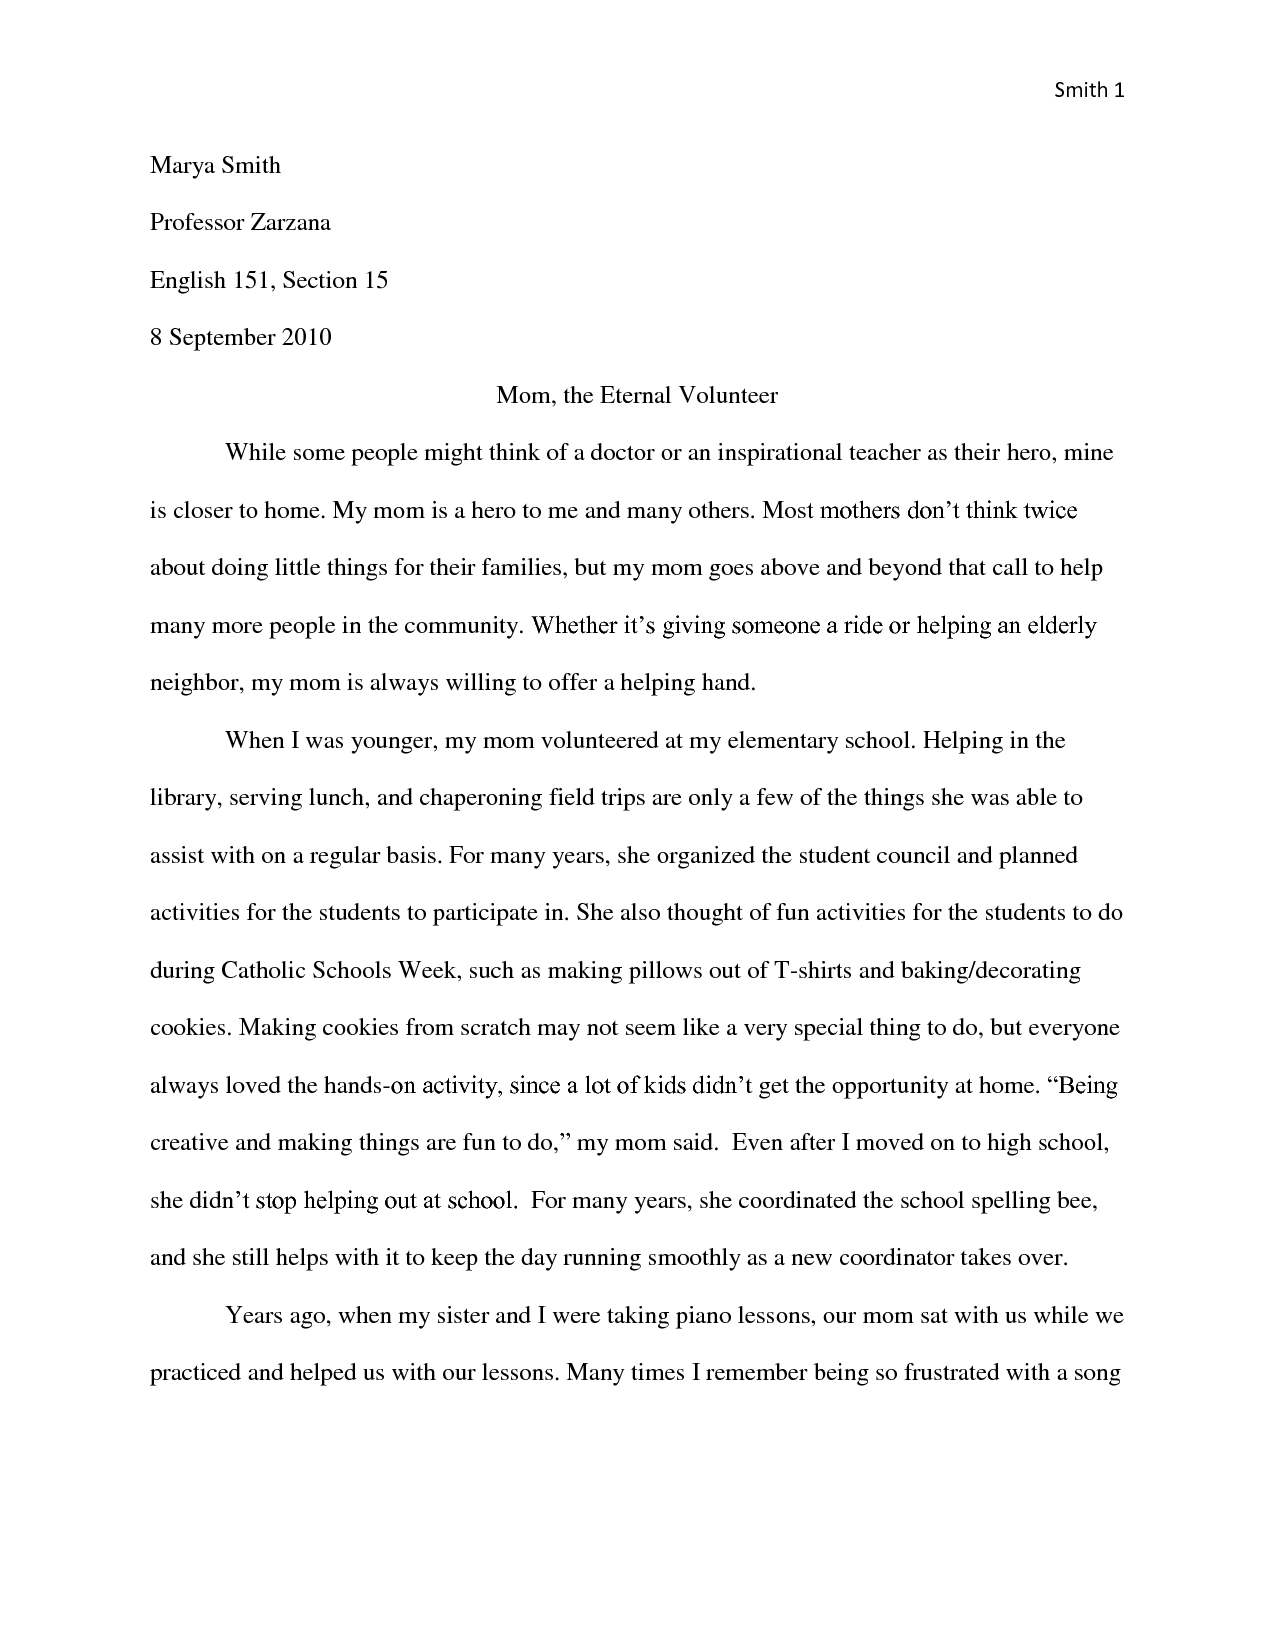 013 Essay Example Mom Hero Essays Template Heroism About My Moment Of Pain And Regret Short Descriptive Expository Role Model Examples An Narrative Tribute Samples Narative Is Remarkable Mother Contest 2017 Full